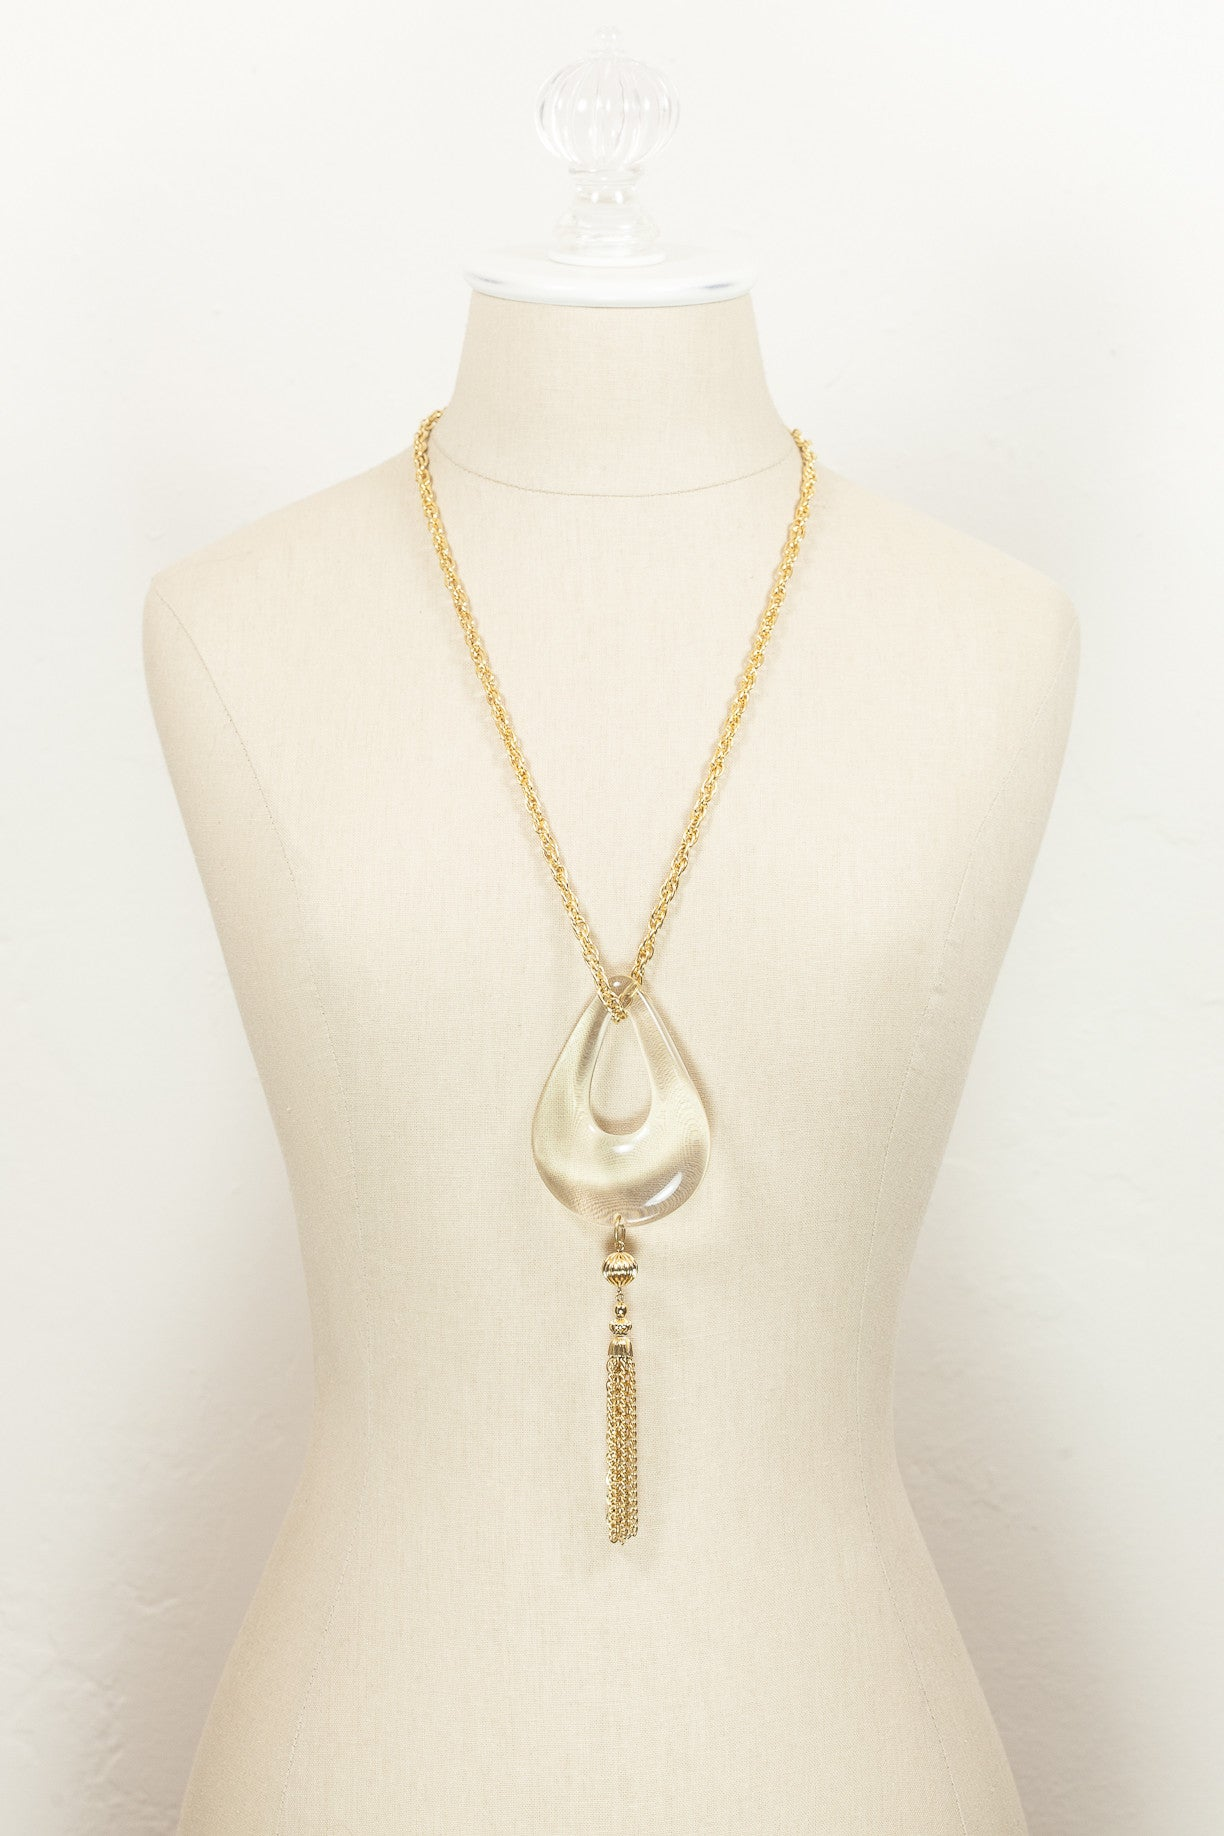 70's__Vintage__Lucite Tassel Necklace